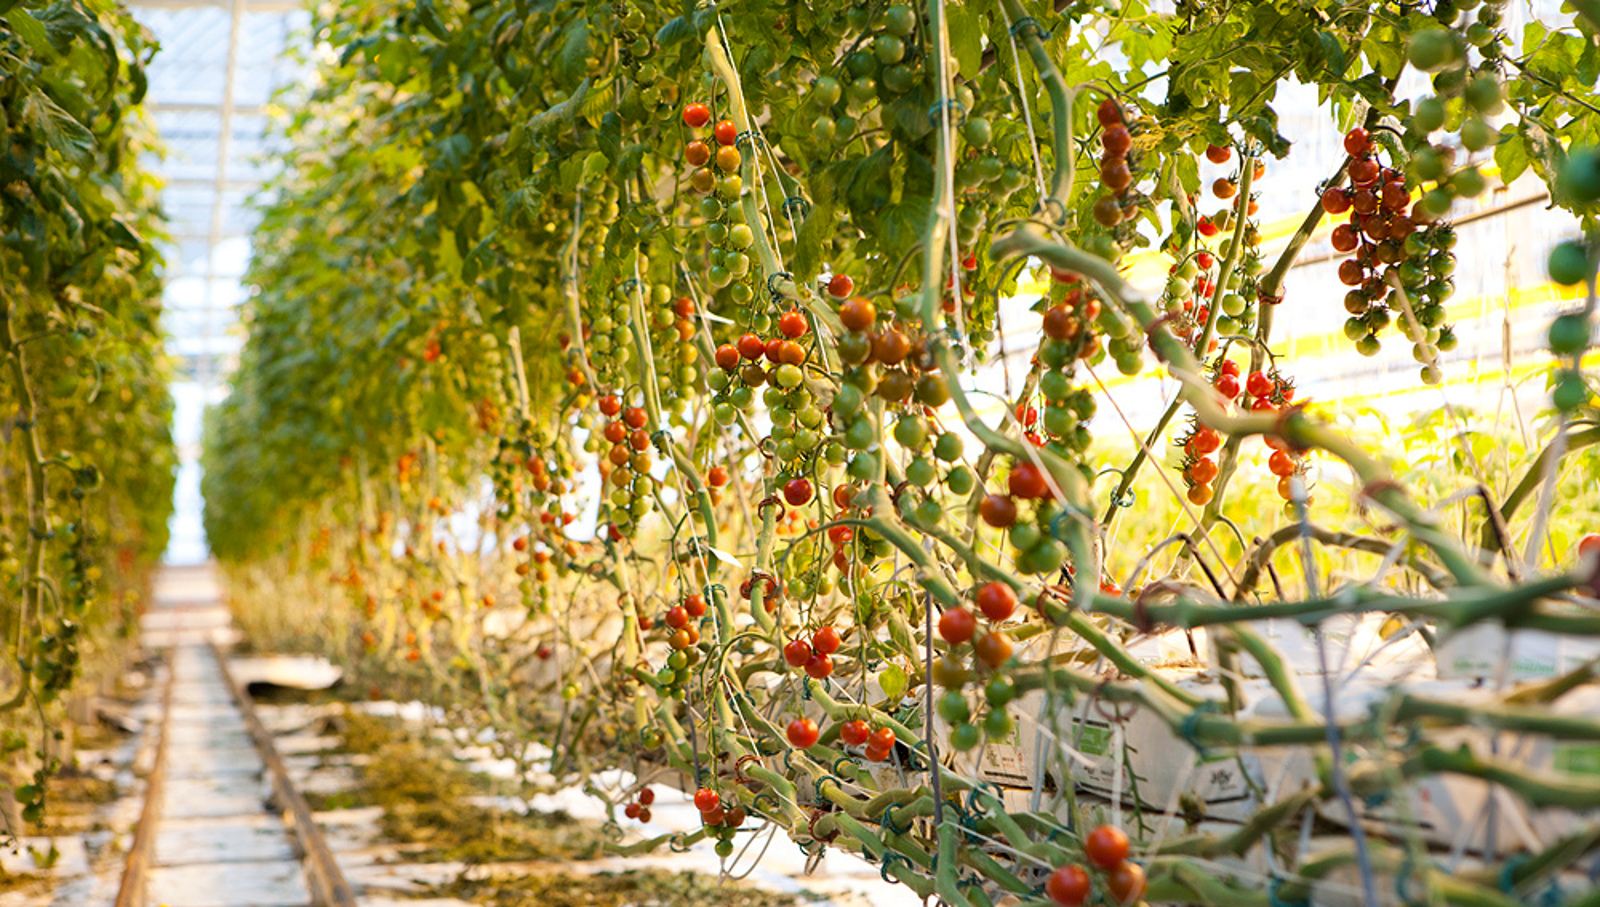 5 Places (That Ain't in the Ground) to Grow Vegetables